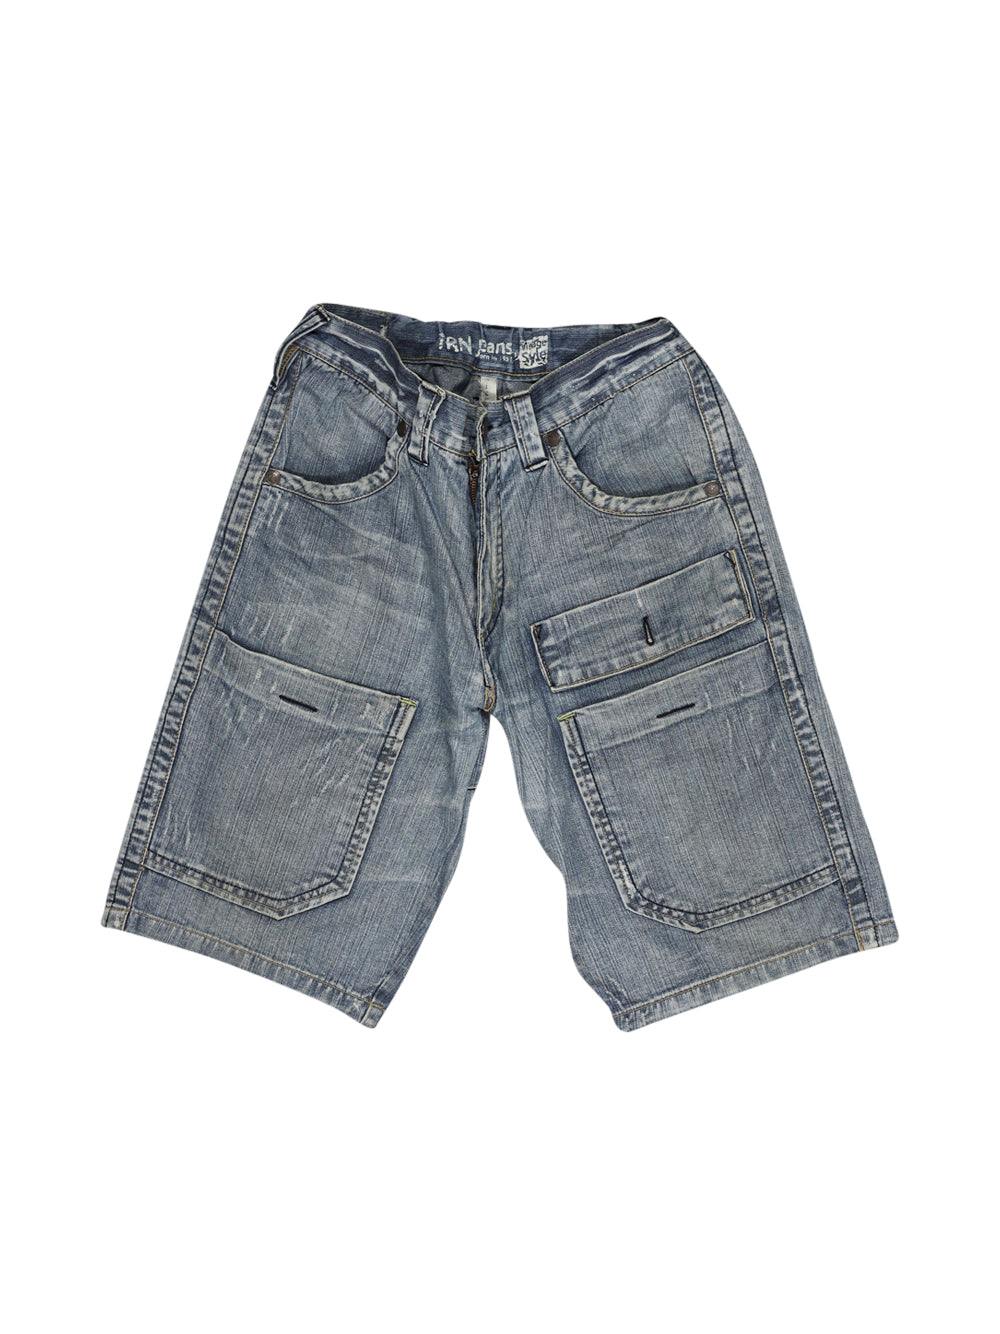 Front photo of Preloved Trn jeans Blue Man's shorts - size 36/S